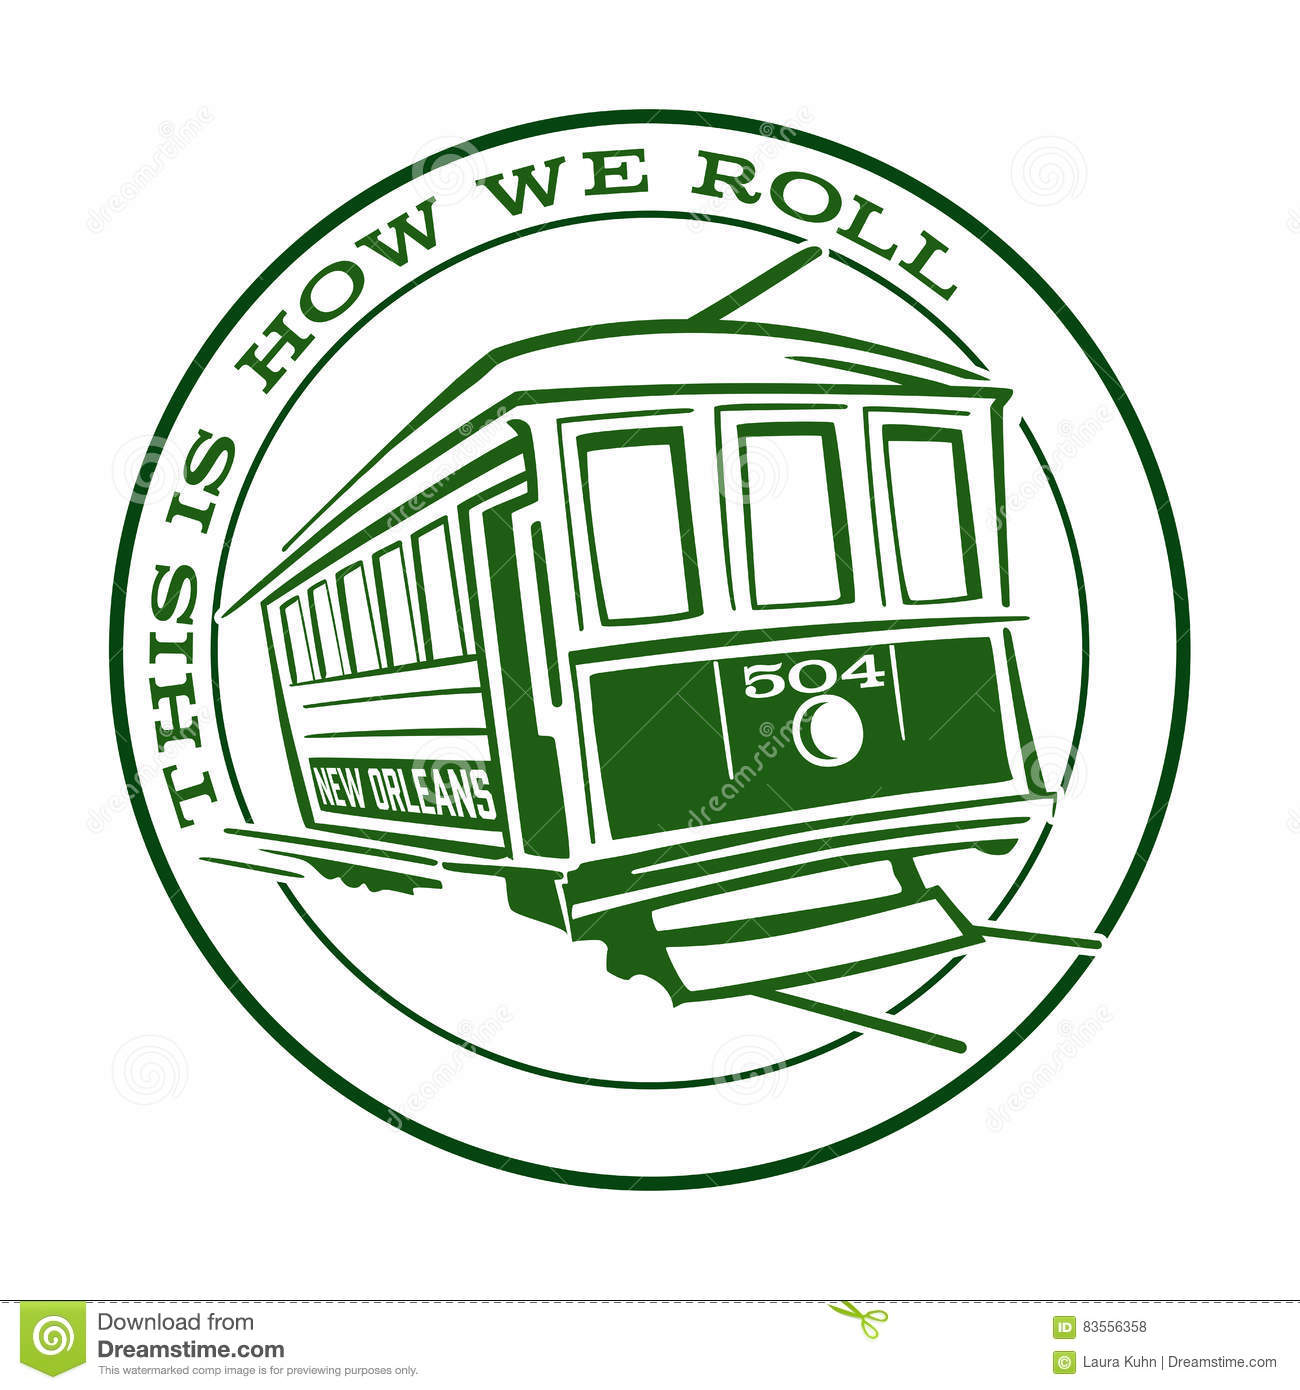 Orleans stock illustrations 2315 orleans stock illustrations new orleans streetcar icon logo symbol new orleans louisiana streetcar trolley this is how we buycottarizona Images